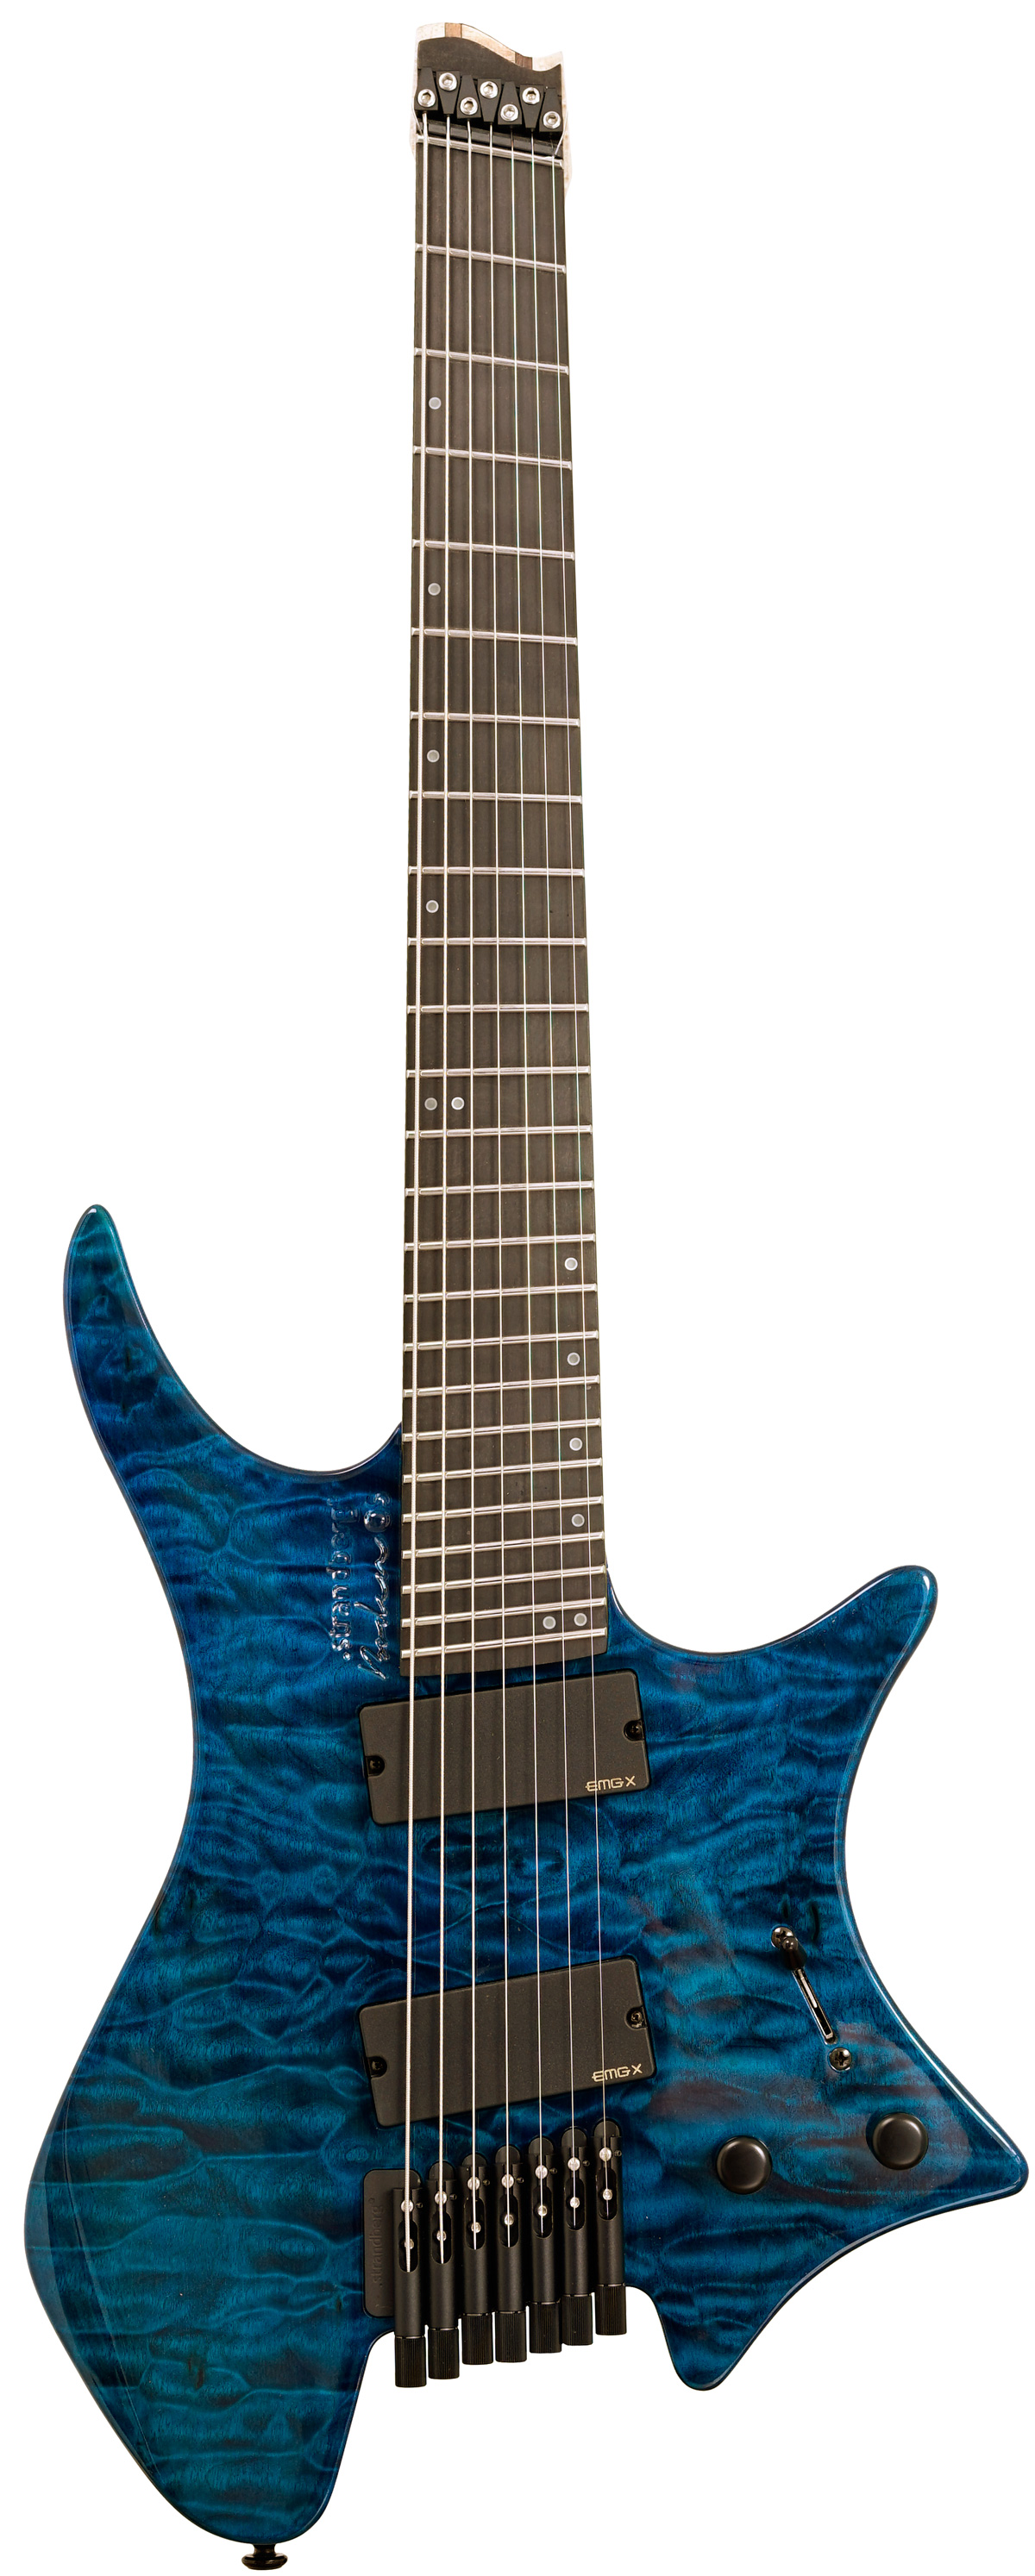 strandberg boden os 7 emg limited edition blue quilt maple. Black Bedroom Furniture Sets. Home Design Ideas